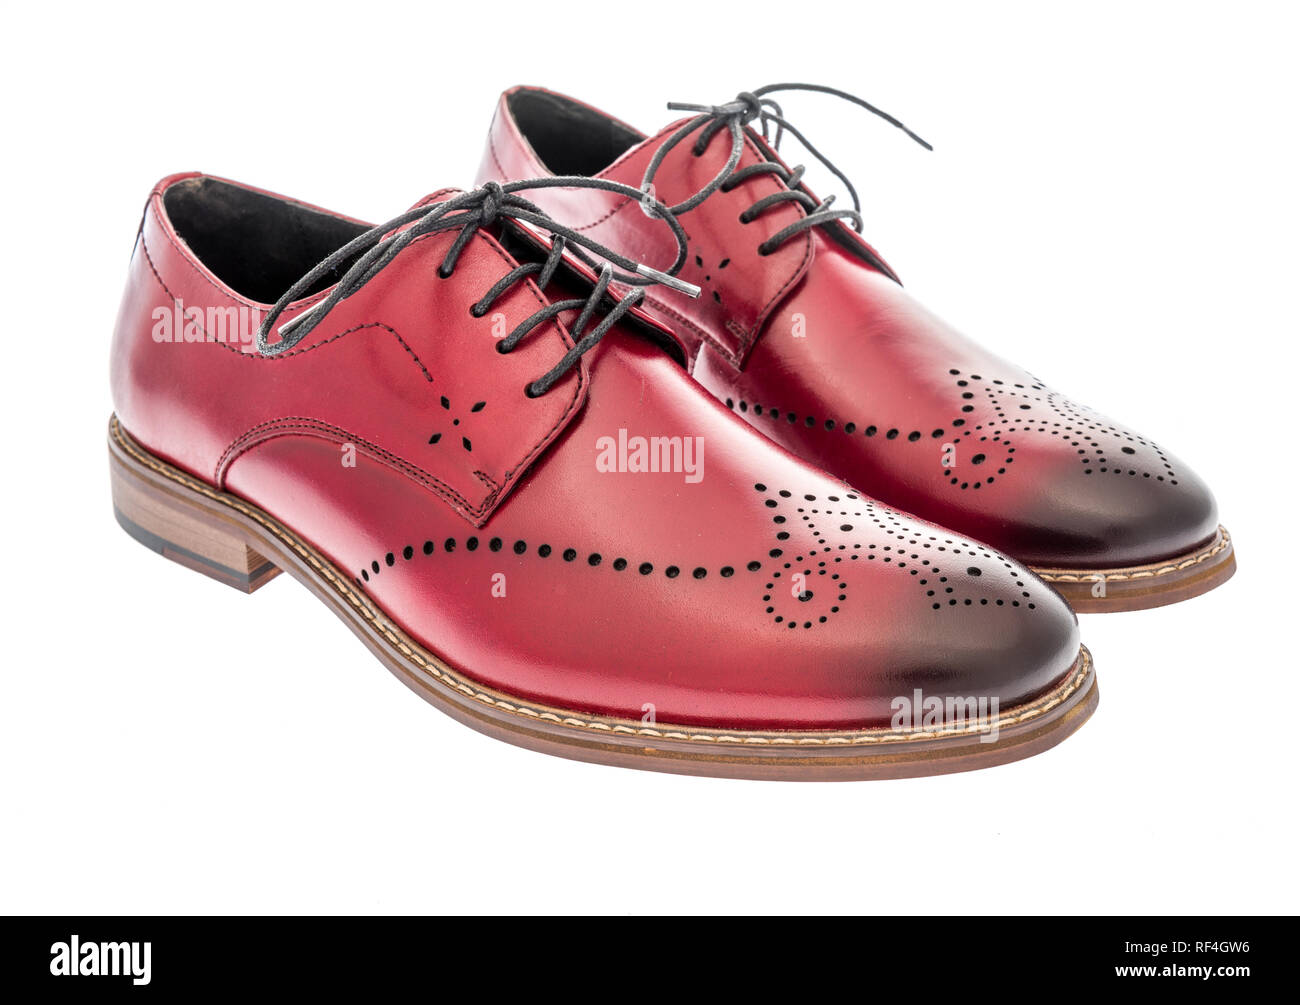 ce81f16d A pair of red wing tip dress shoes on an isolated background Stock ...